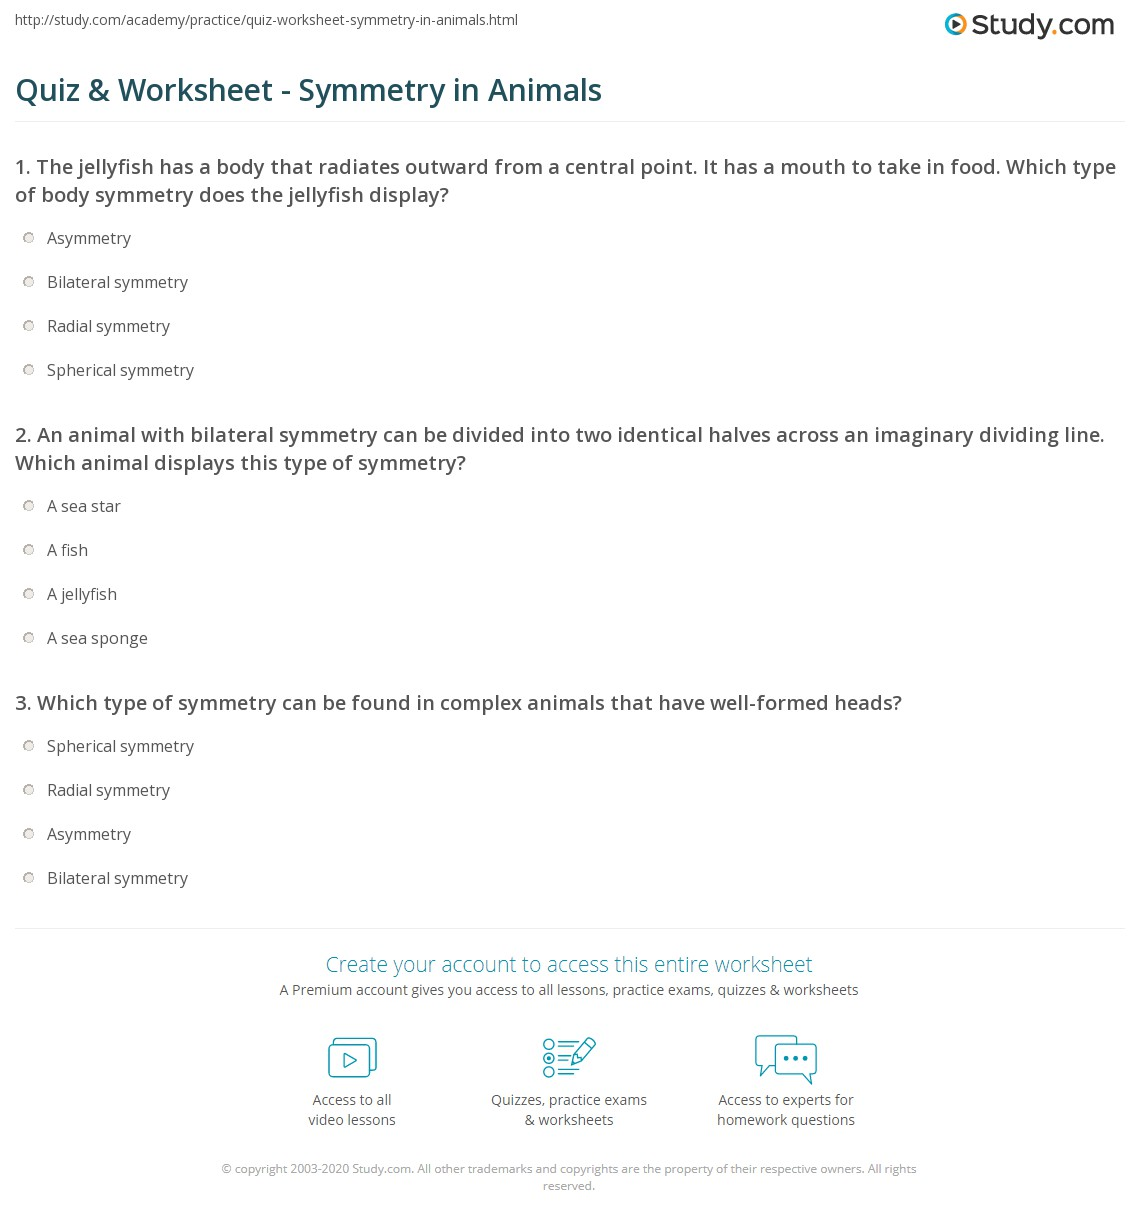 Animal Symmetry Worksheet Answers - Intrepidpath